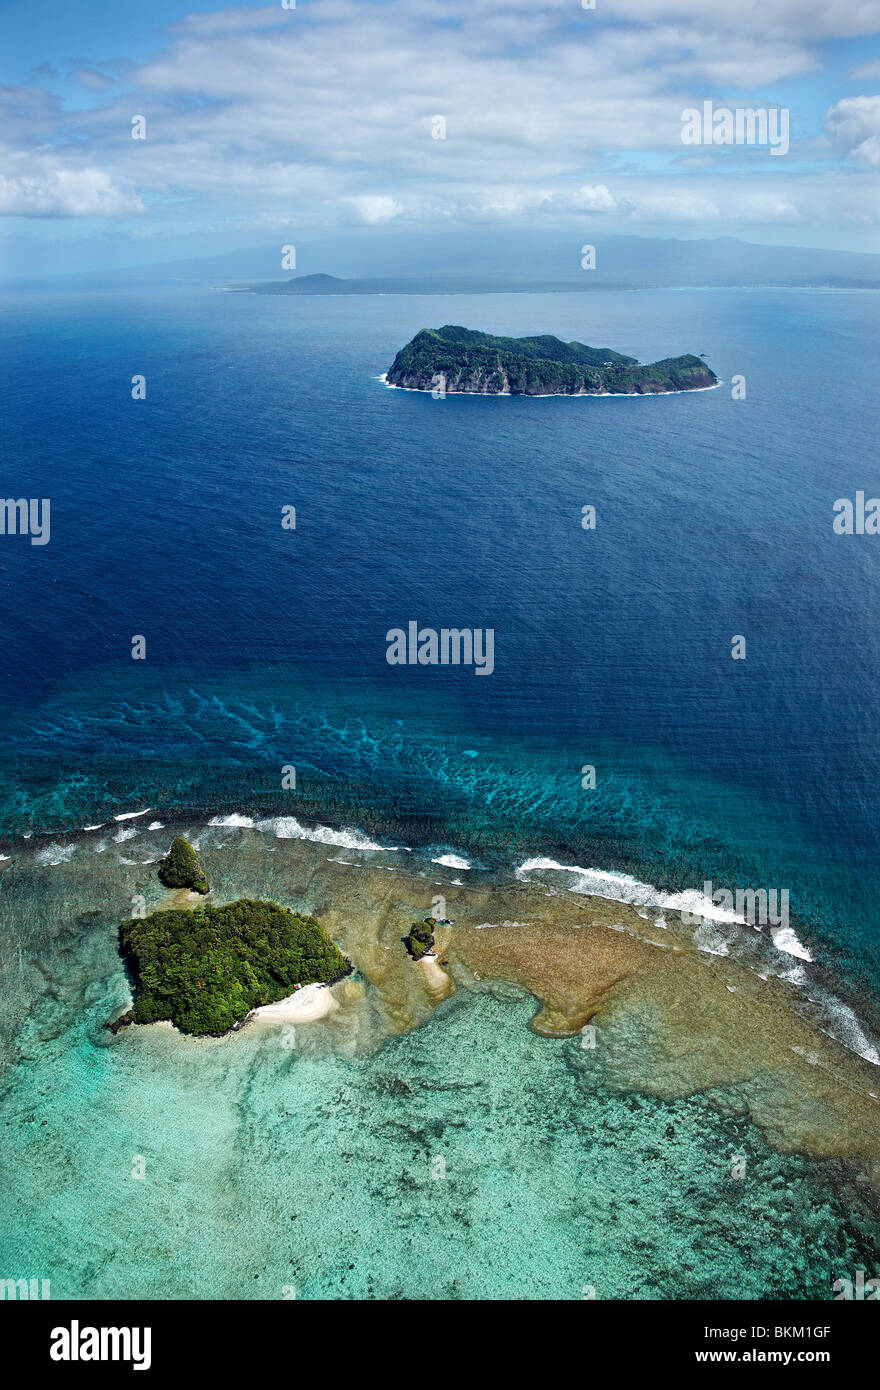 Aerial view of Nu'ulopa, Apolima & Savaii islands and reefs, Samoa - Stock Image